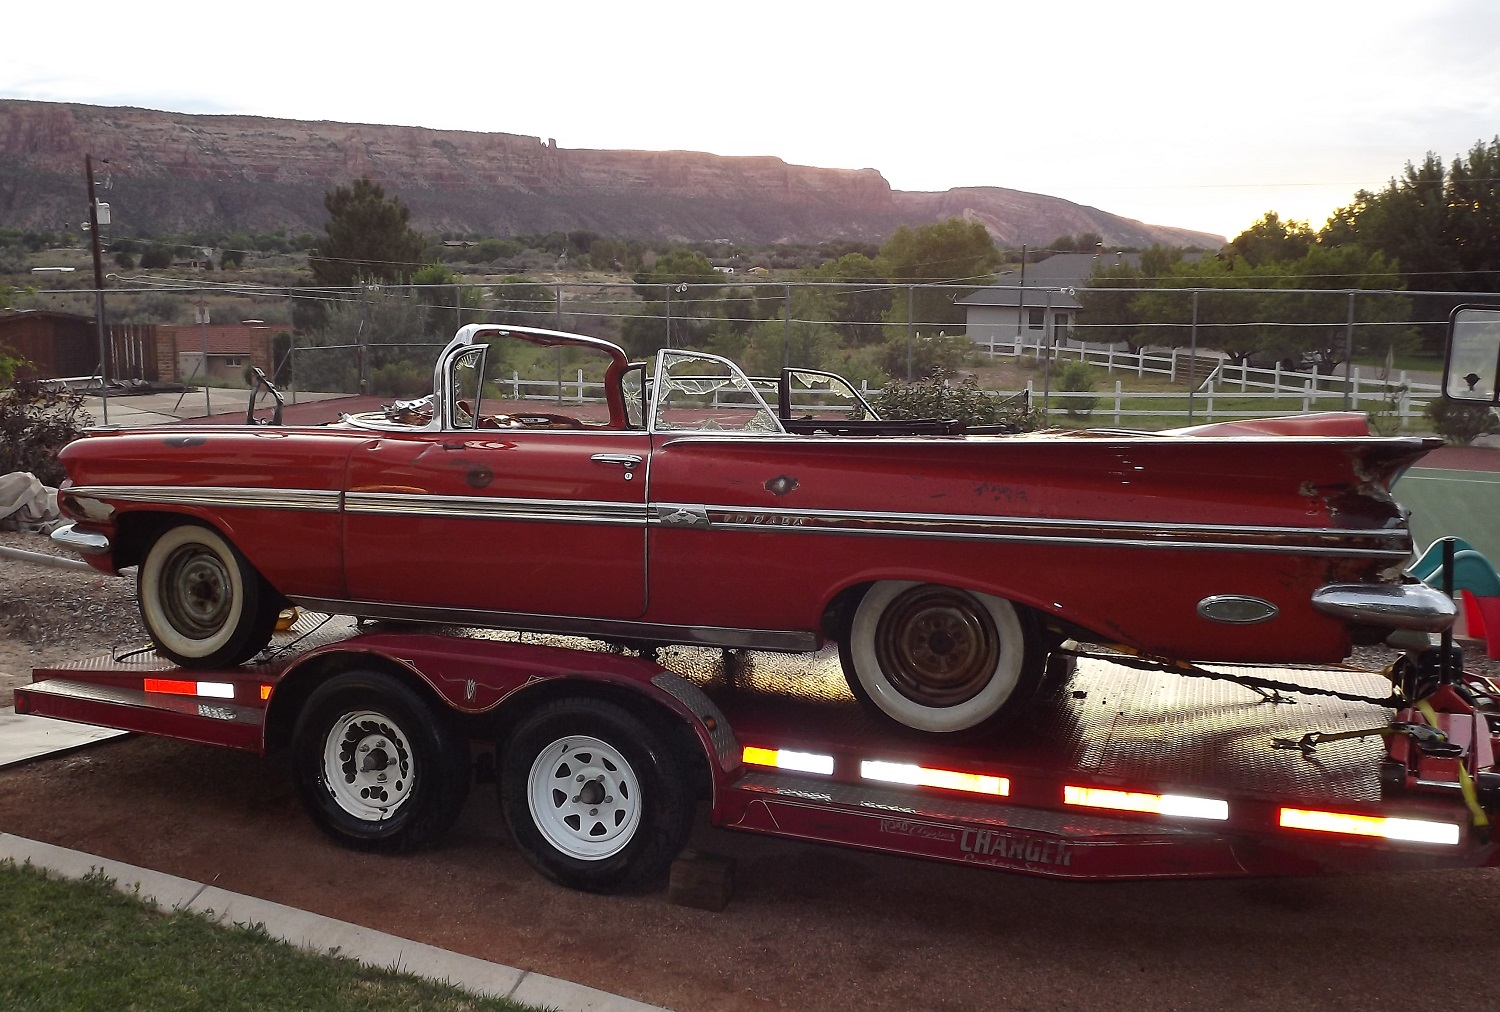 car trucks for sale in craigslist with 1959 Chevrolet Impala Fuel Injected Convertible on 1972 FORD RANCHERO PICKUP 75454 likewise Showthread together with 1954 FORD F 100 PICKUP 130958 as well Long Way Home 1947 Chevy Truck furthermore Its A Car Its A Truck Its A 1957 Ford Ranchero.